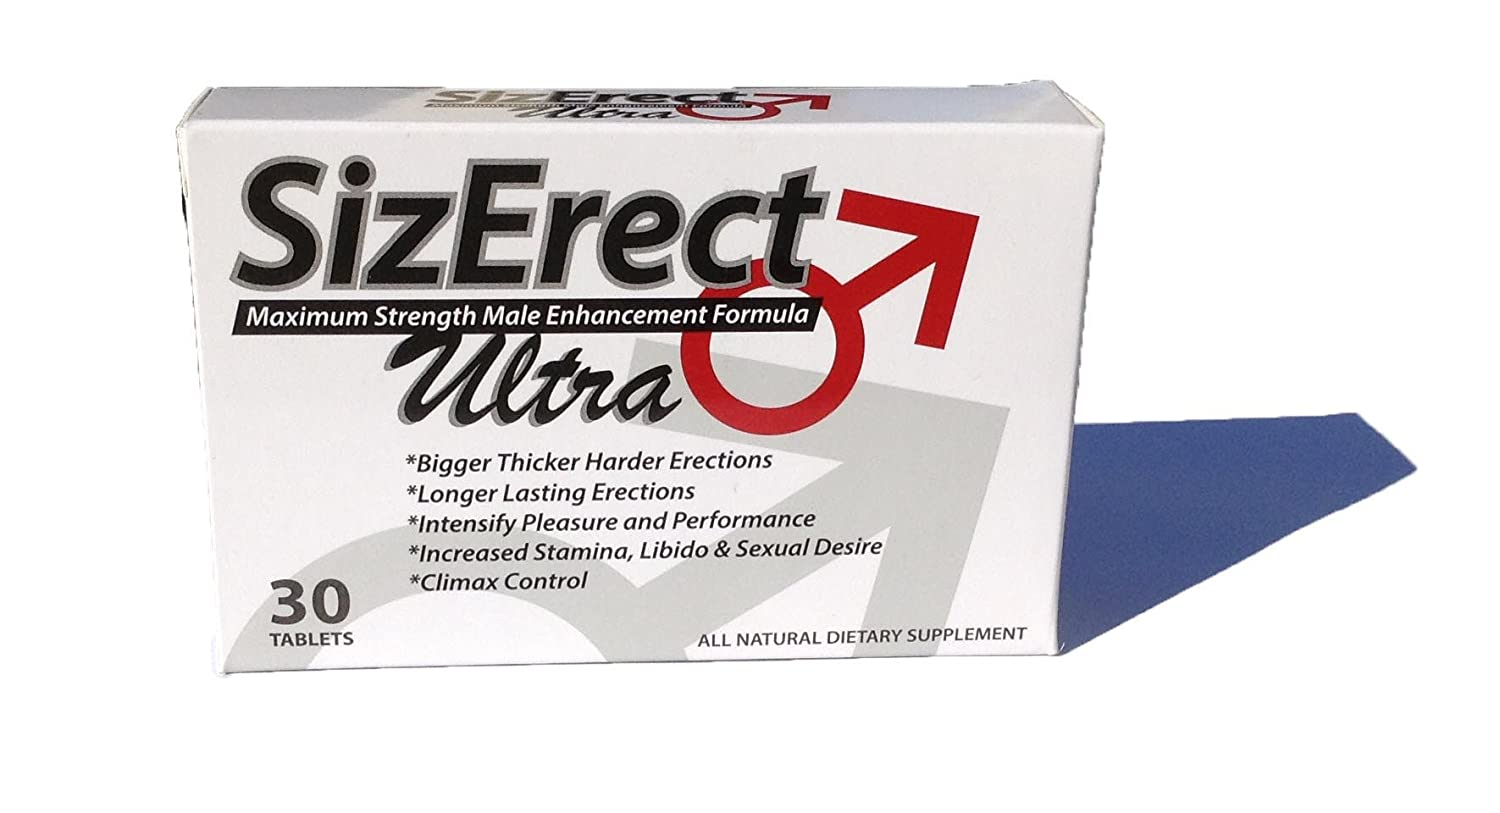 Amazon.com: SizErect Ultra - Maximum Strength Male Sexual Enhancement Pills - New & Improved Fast Acting, Long Lasting Formula - Limited Supply: Health ...